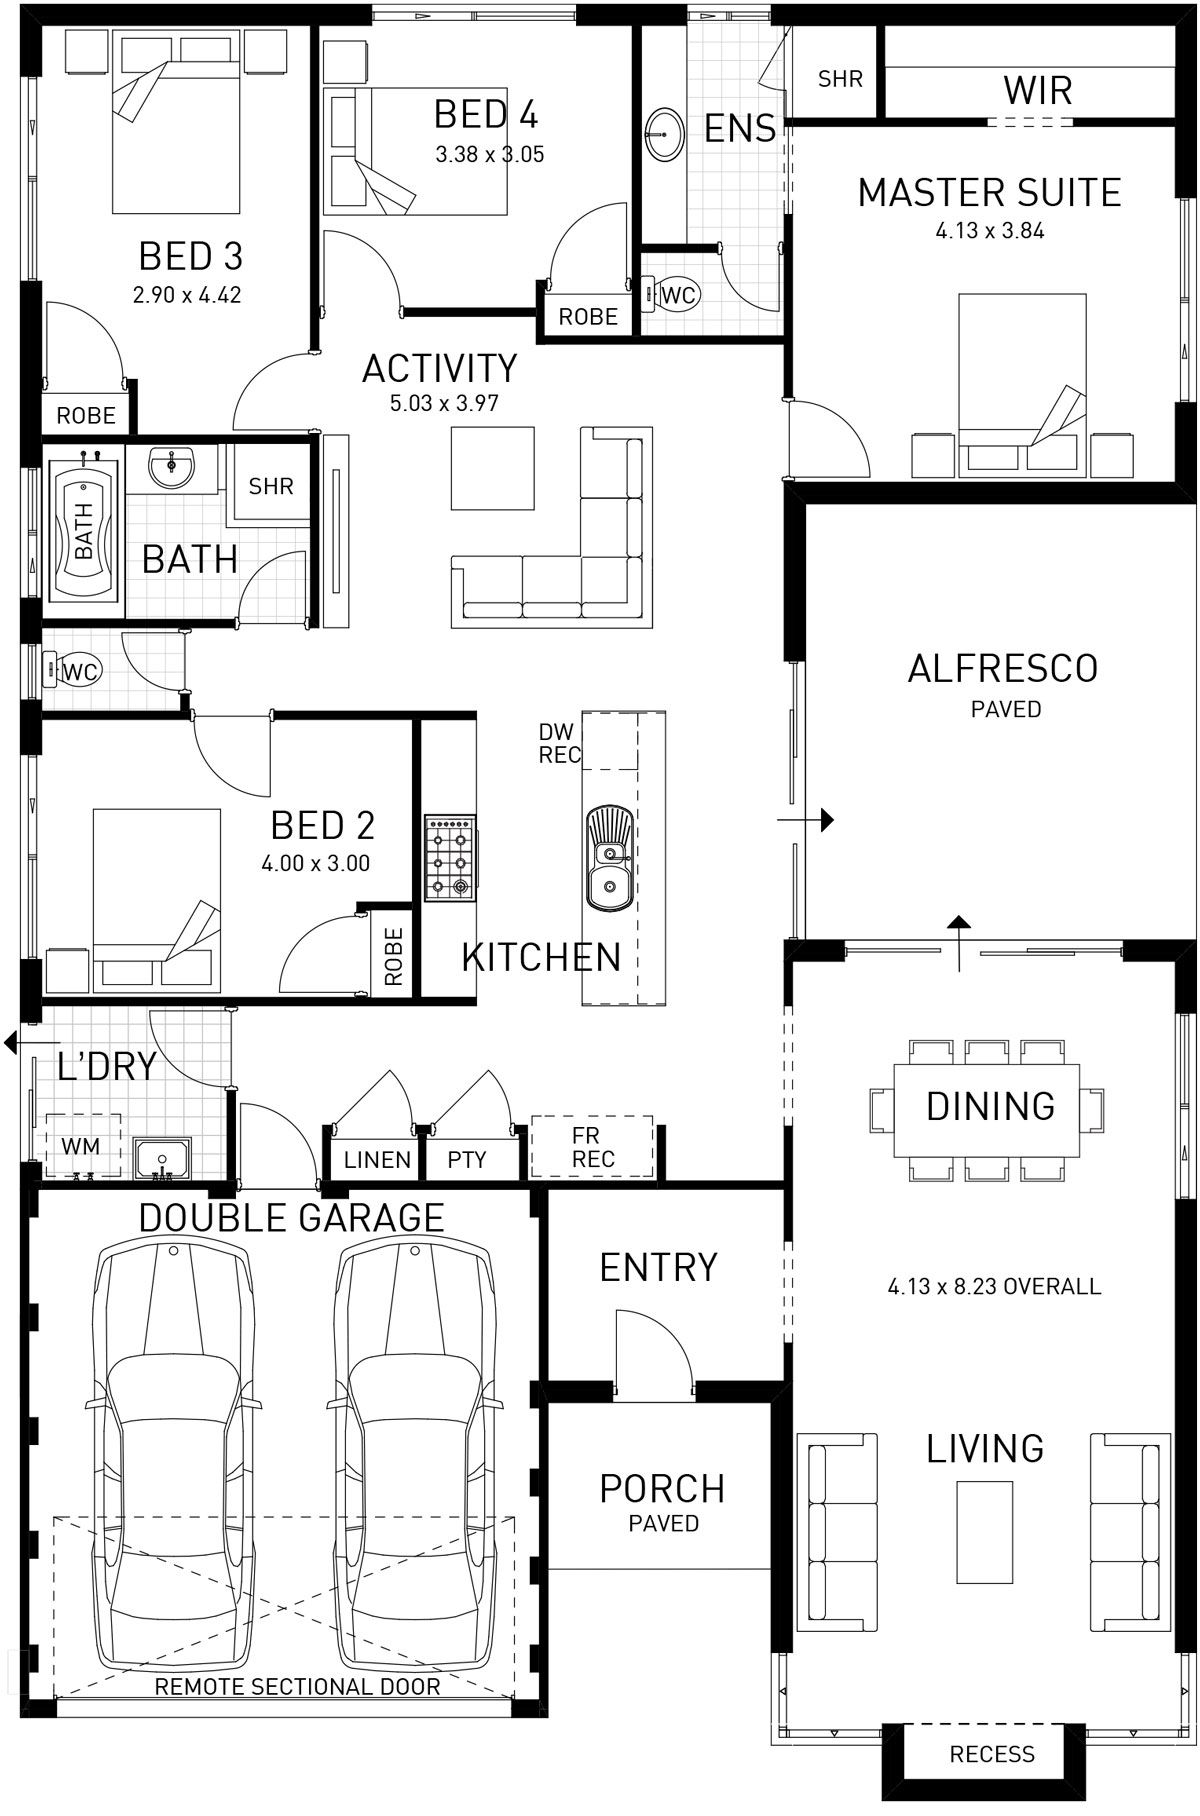 Semillon Single Storey Foundation Floor Plan Western Australia Mansion Floor Plan 4 Bedroom House Plans Floor Plans